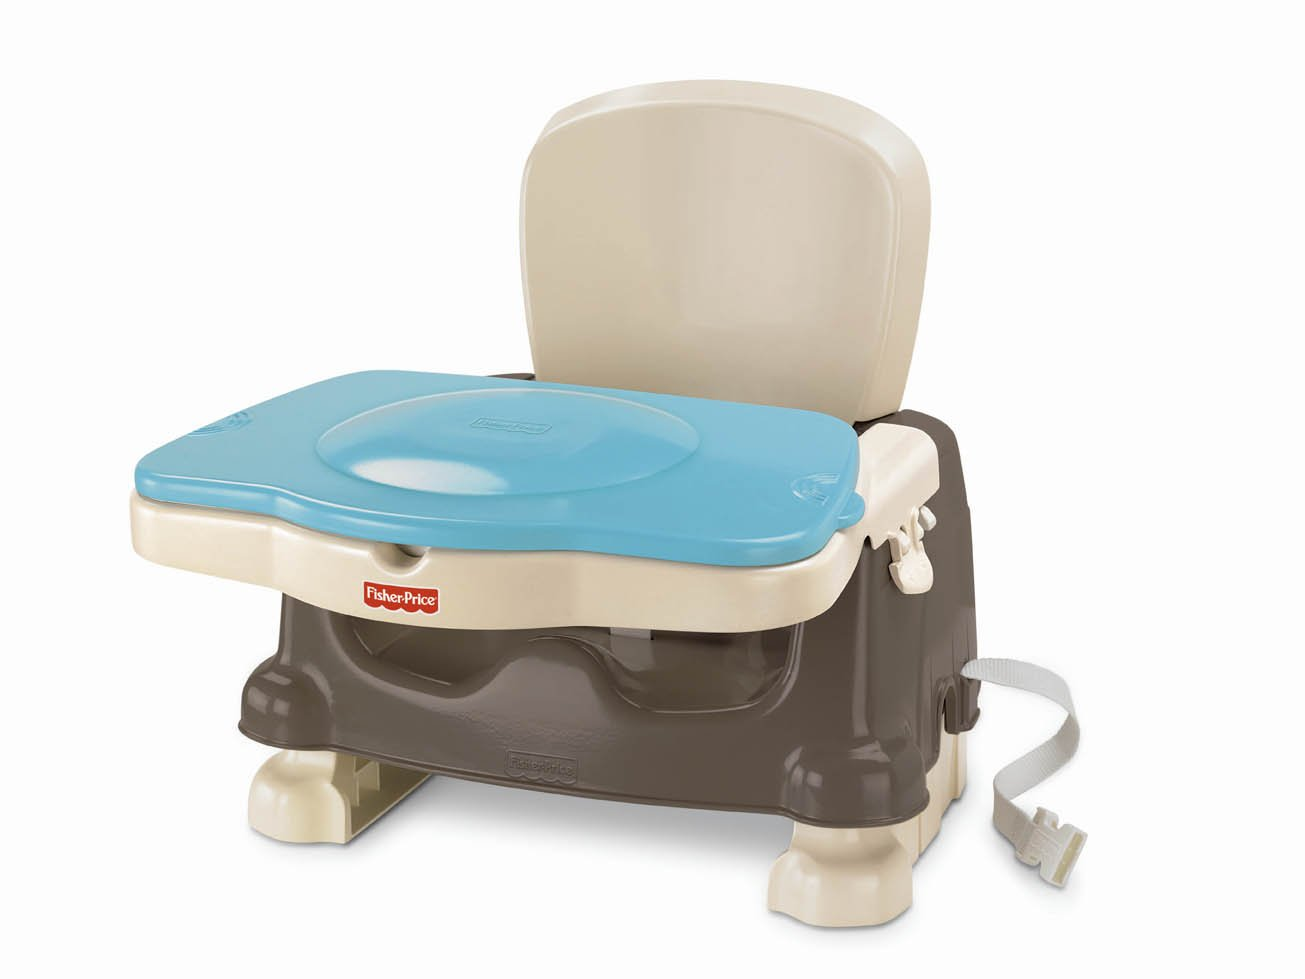 Fisher-Price Deluxe Booster Seat, Brown/Tan BMH09